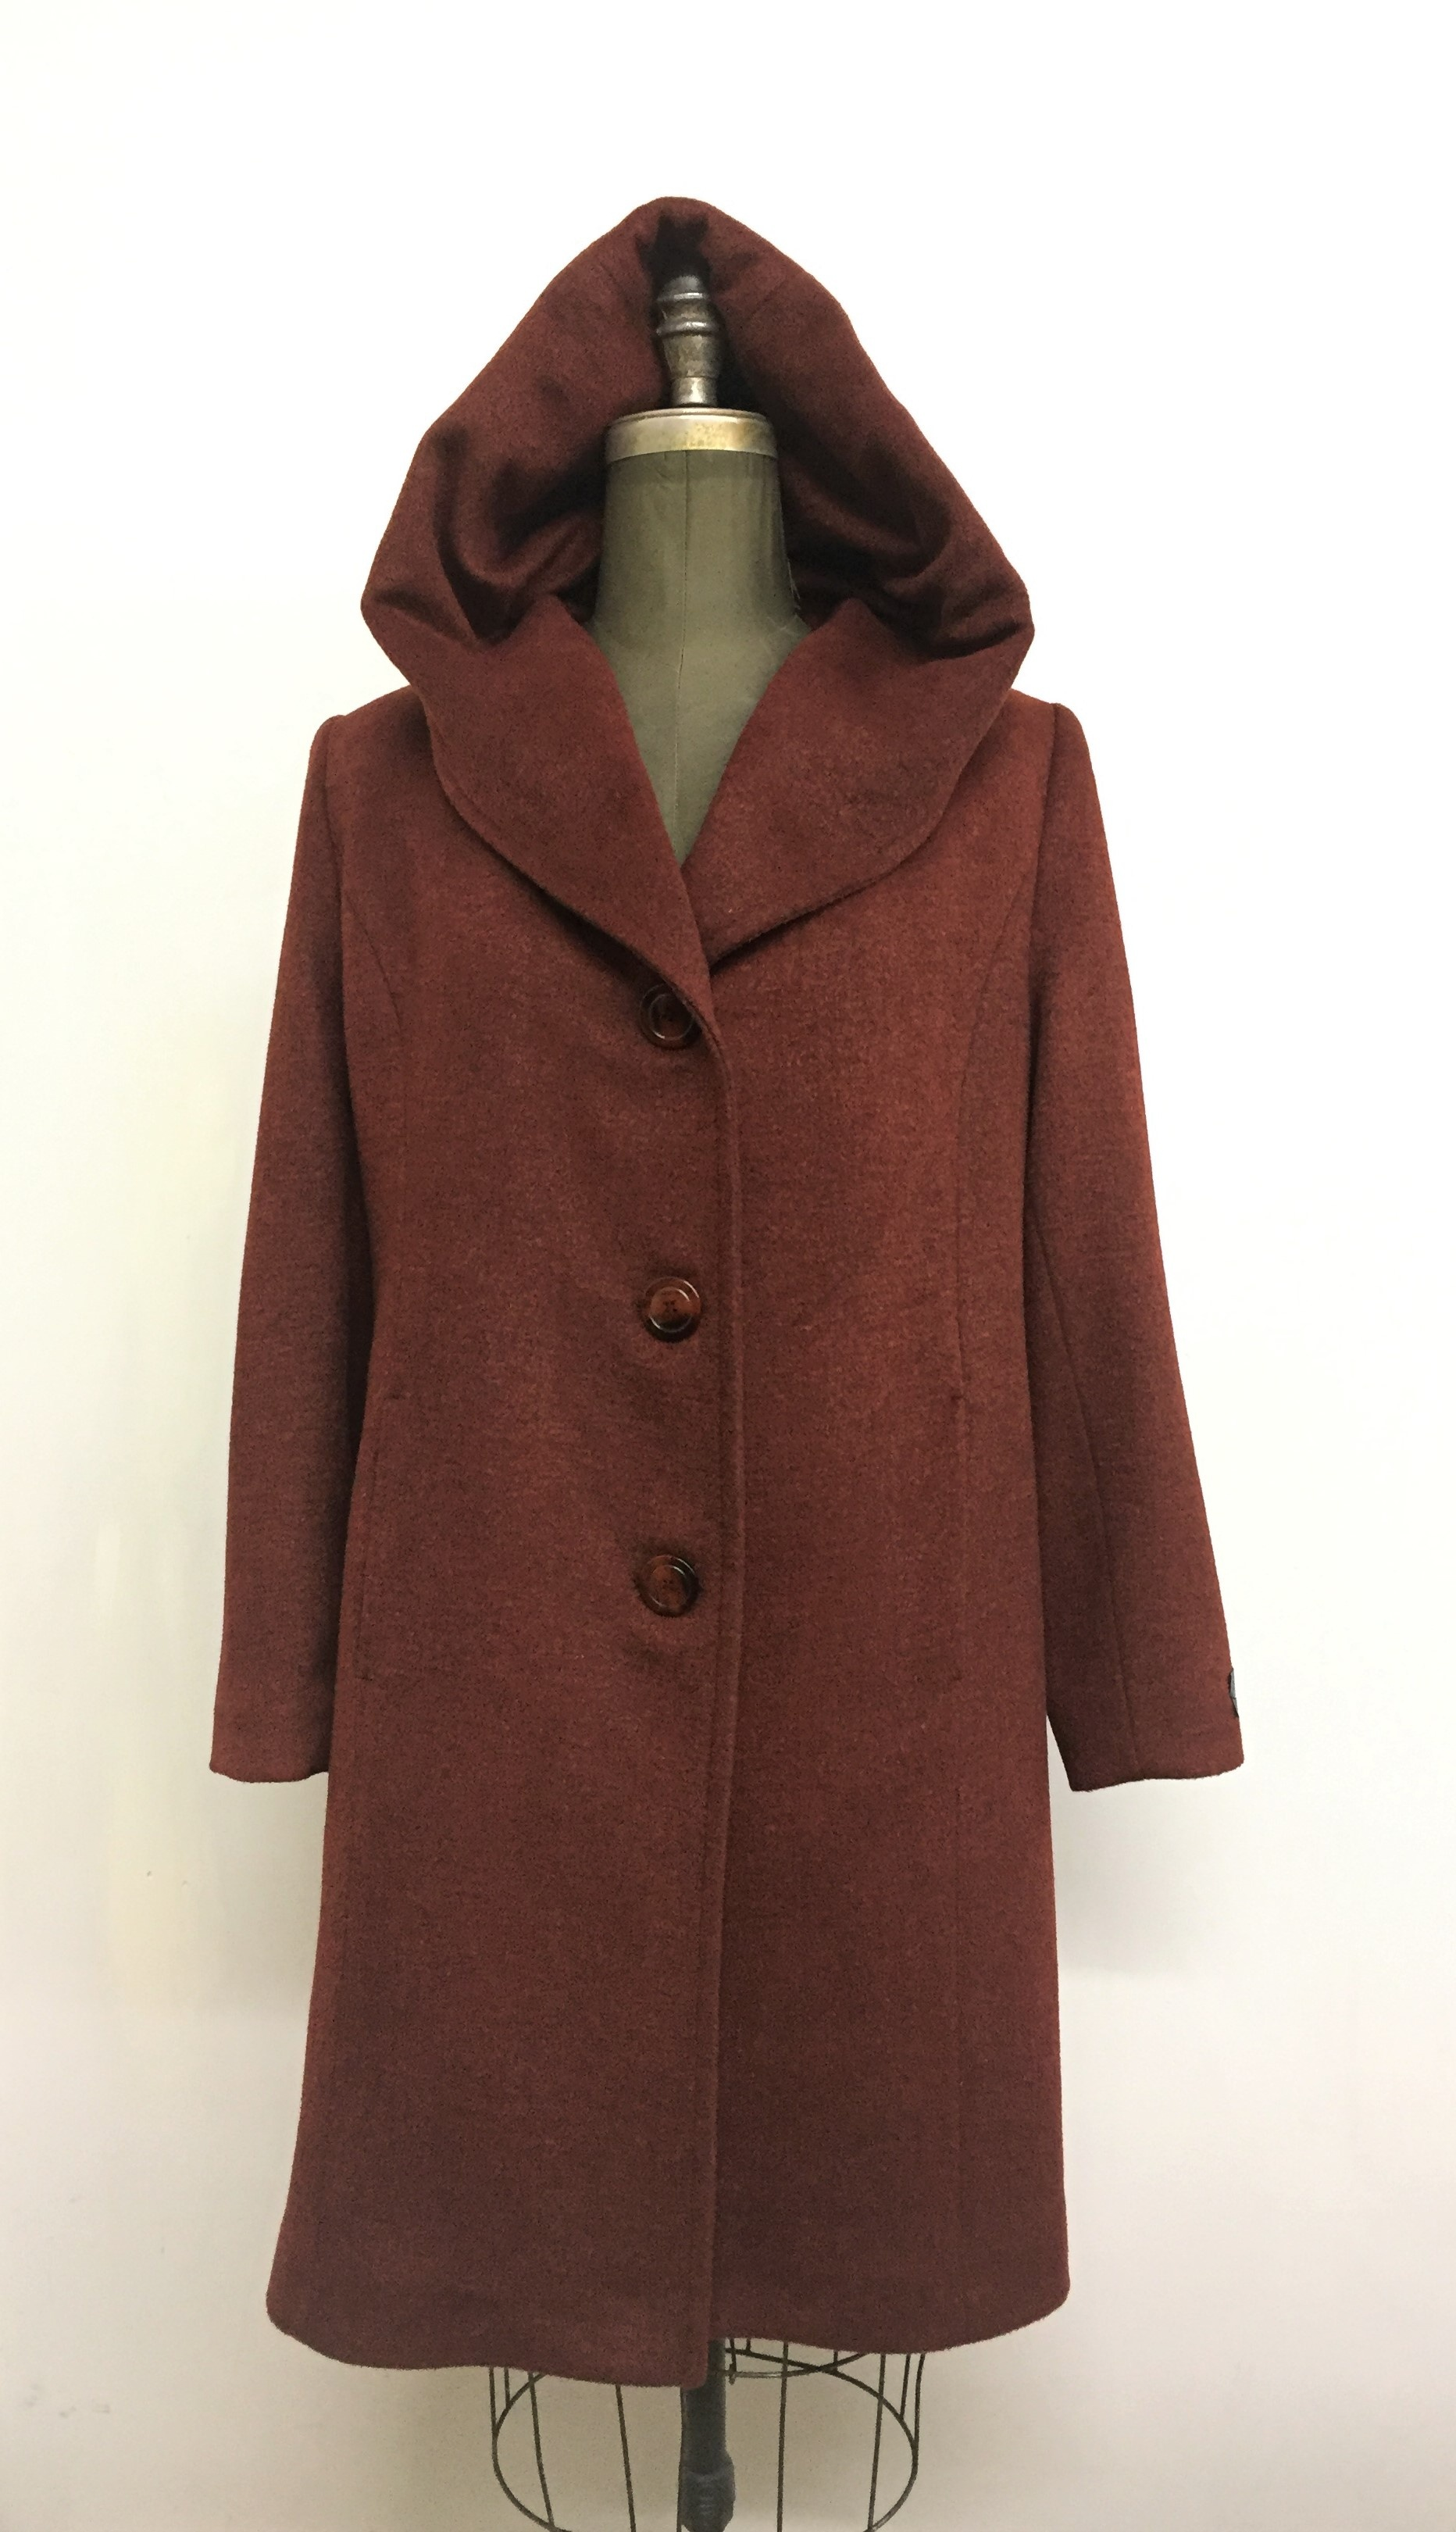 Style #4405-13   Sunset Cashmere & Wool   Features:  Generous fit. Cozy and warm is how you'll feel. Knee length, single breasted coat with plenty of room  for layering.  Over-sized hood which extends into  at neckline.  Includes extra buttons. Chamois lined for warmth.  Available Fabrics:   Cashmere or Cashmere Blend, Alpaca, 100% Pure Virgin Wool and more.  In-Stock Colours: Black, Dark Navy, Rust, Plum, Camel,  Black Tweed, Indigo, Stone, Sangria, Navy or  can be custom made in any colour or fabric.  Size: S,M,L  Price:   $ 549 and up